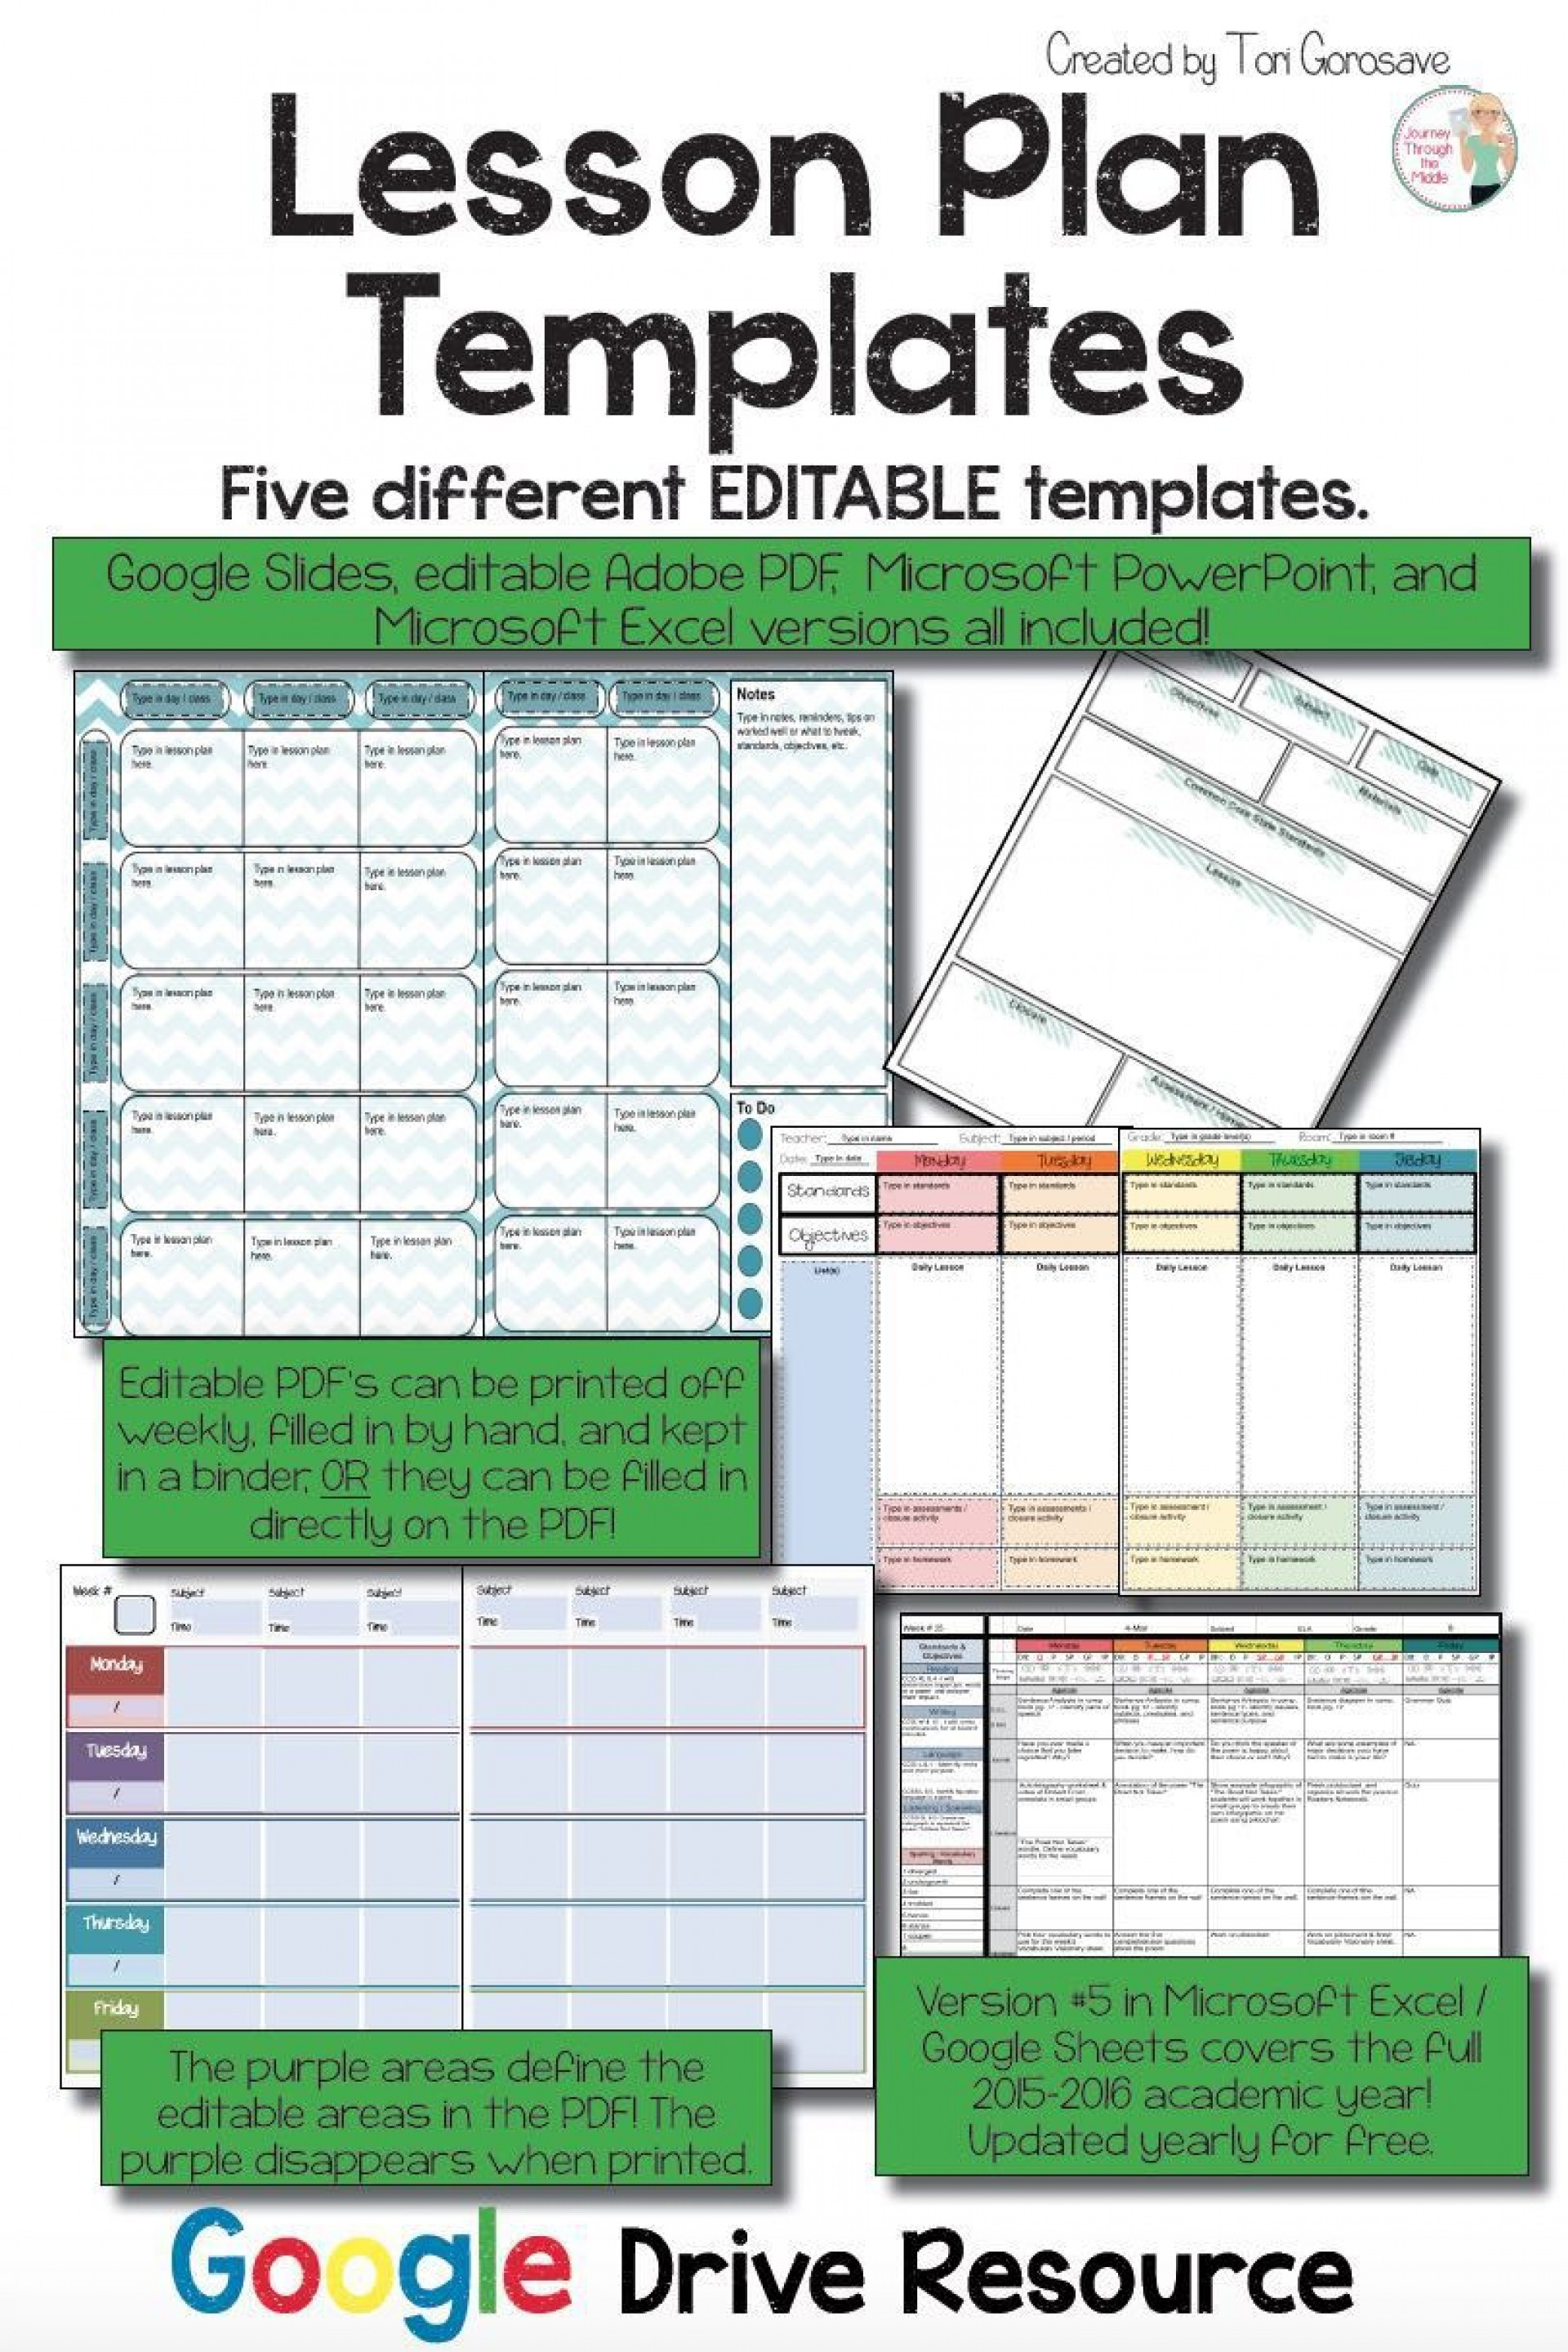 003 Astounding Editable Lesson Plan Template Middle School High Def 1920